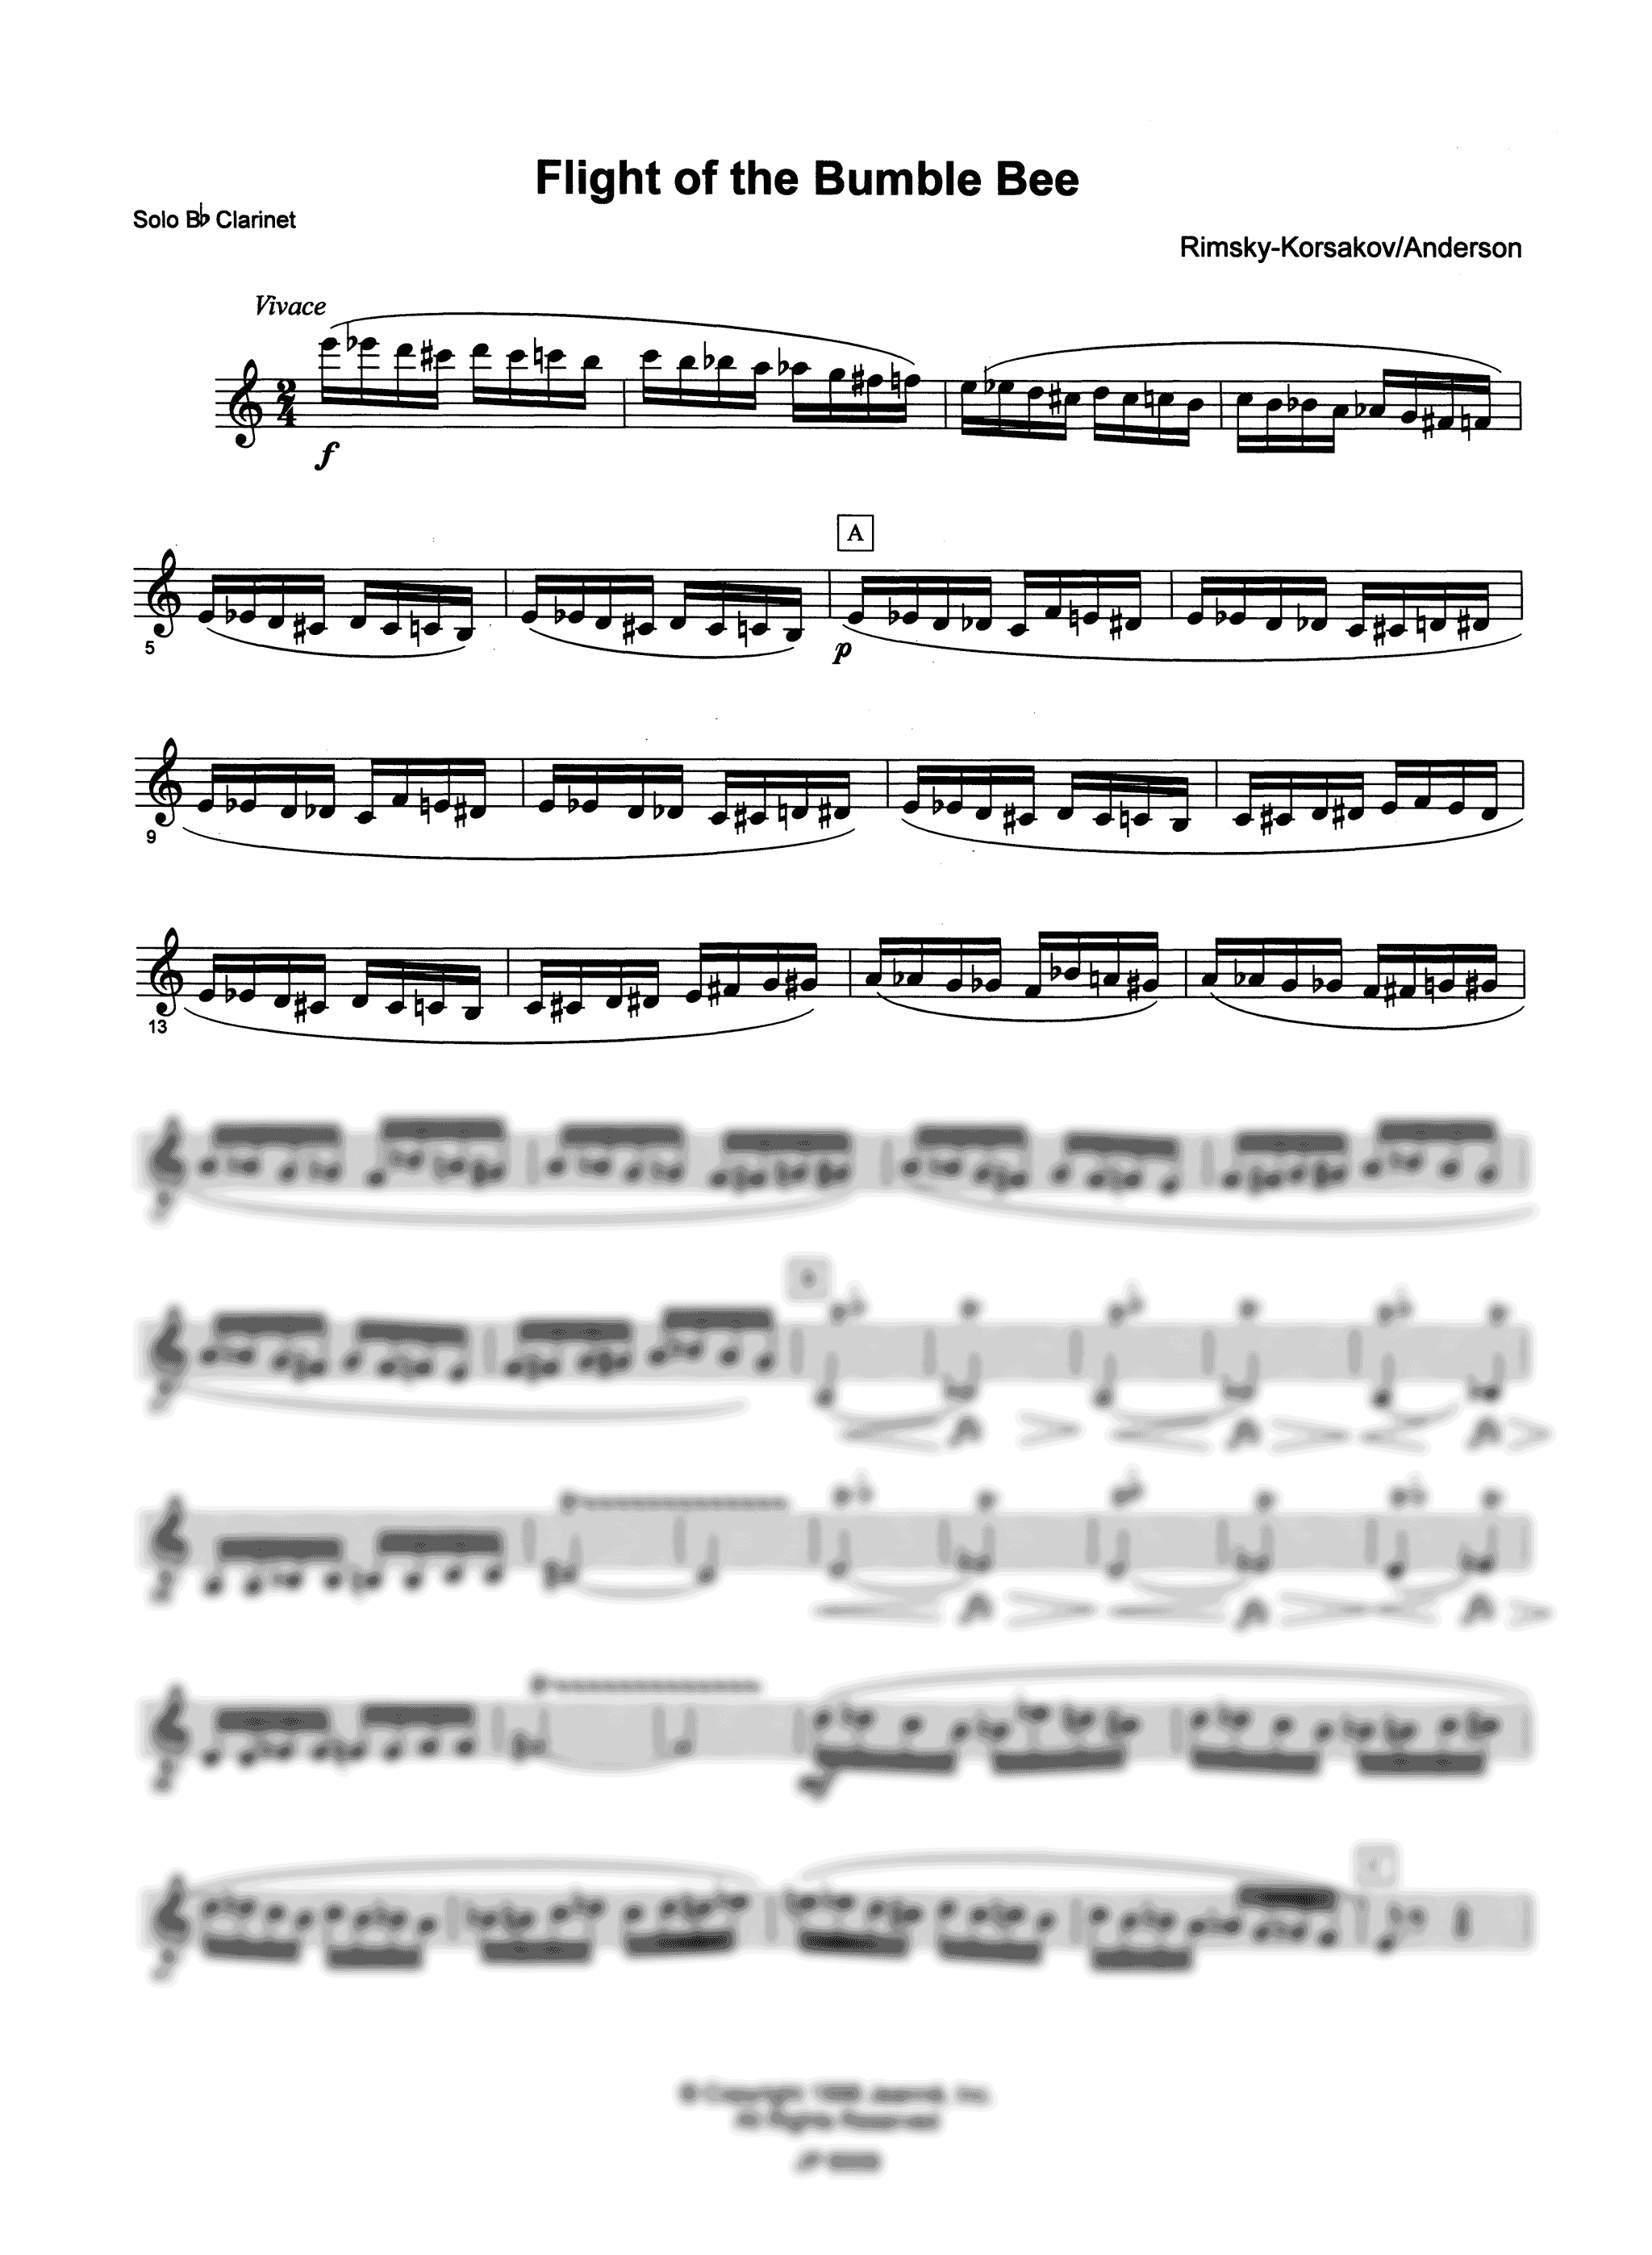 Flight of the Bumblebee for Clarinet & Concert Band Solo Clarinet Part